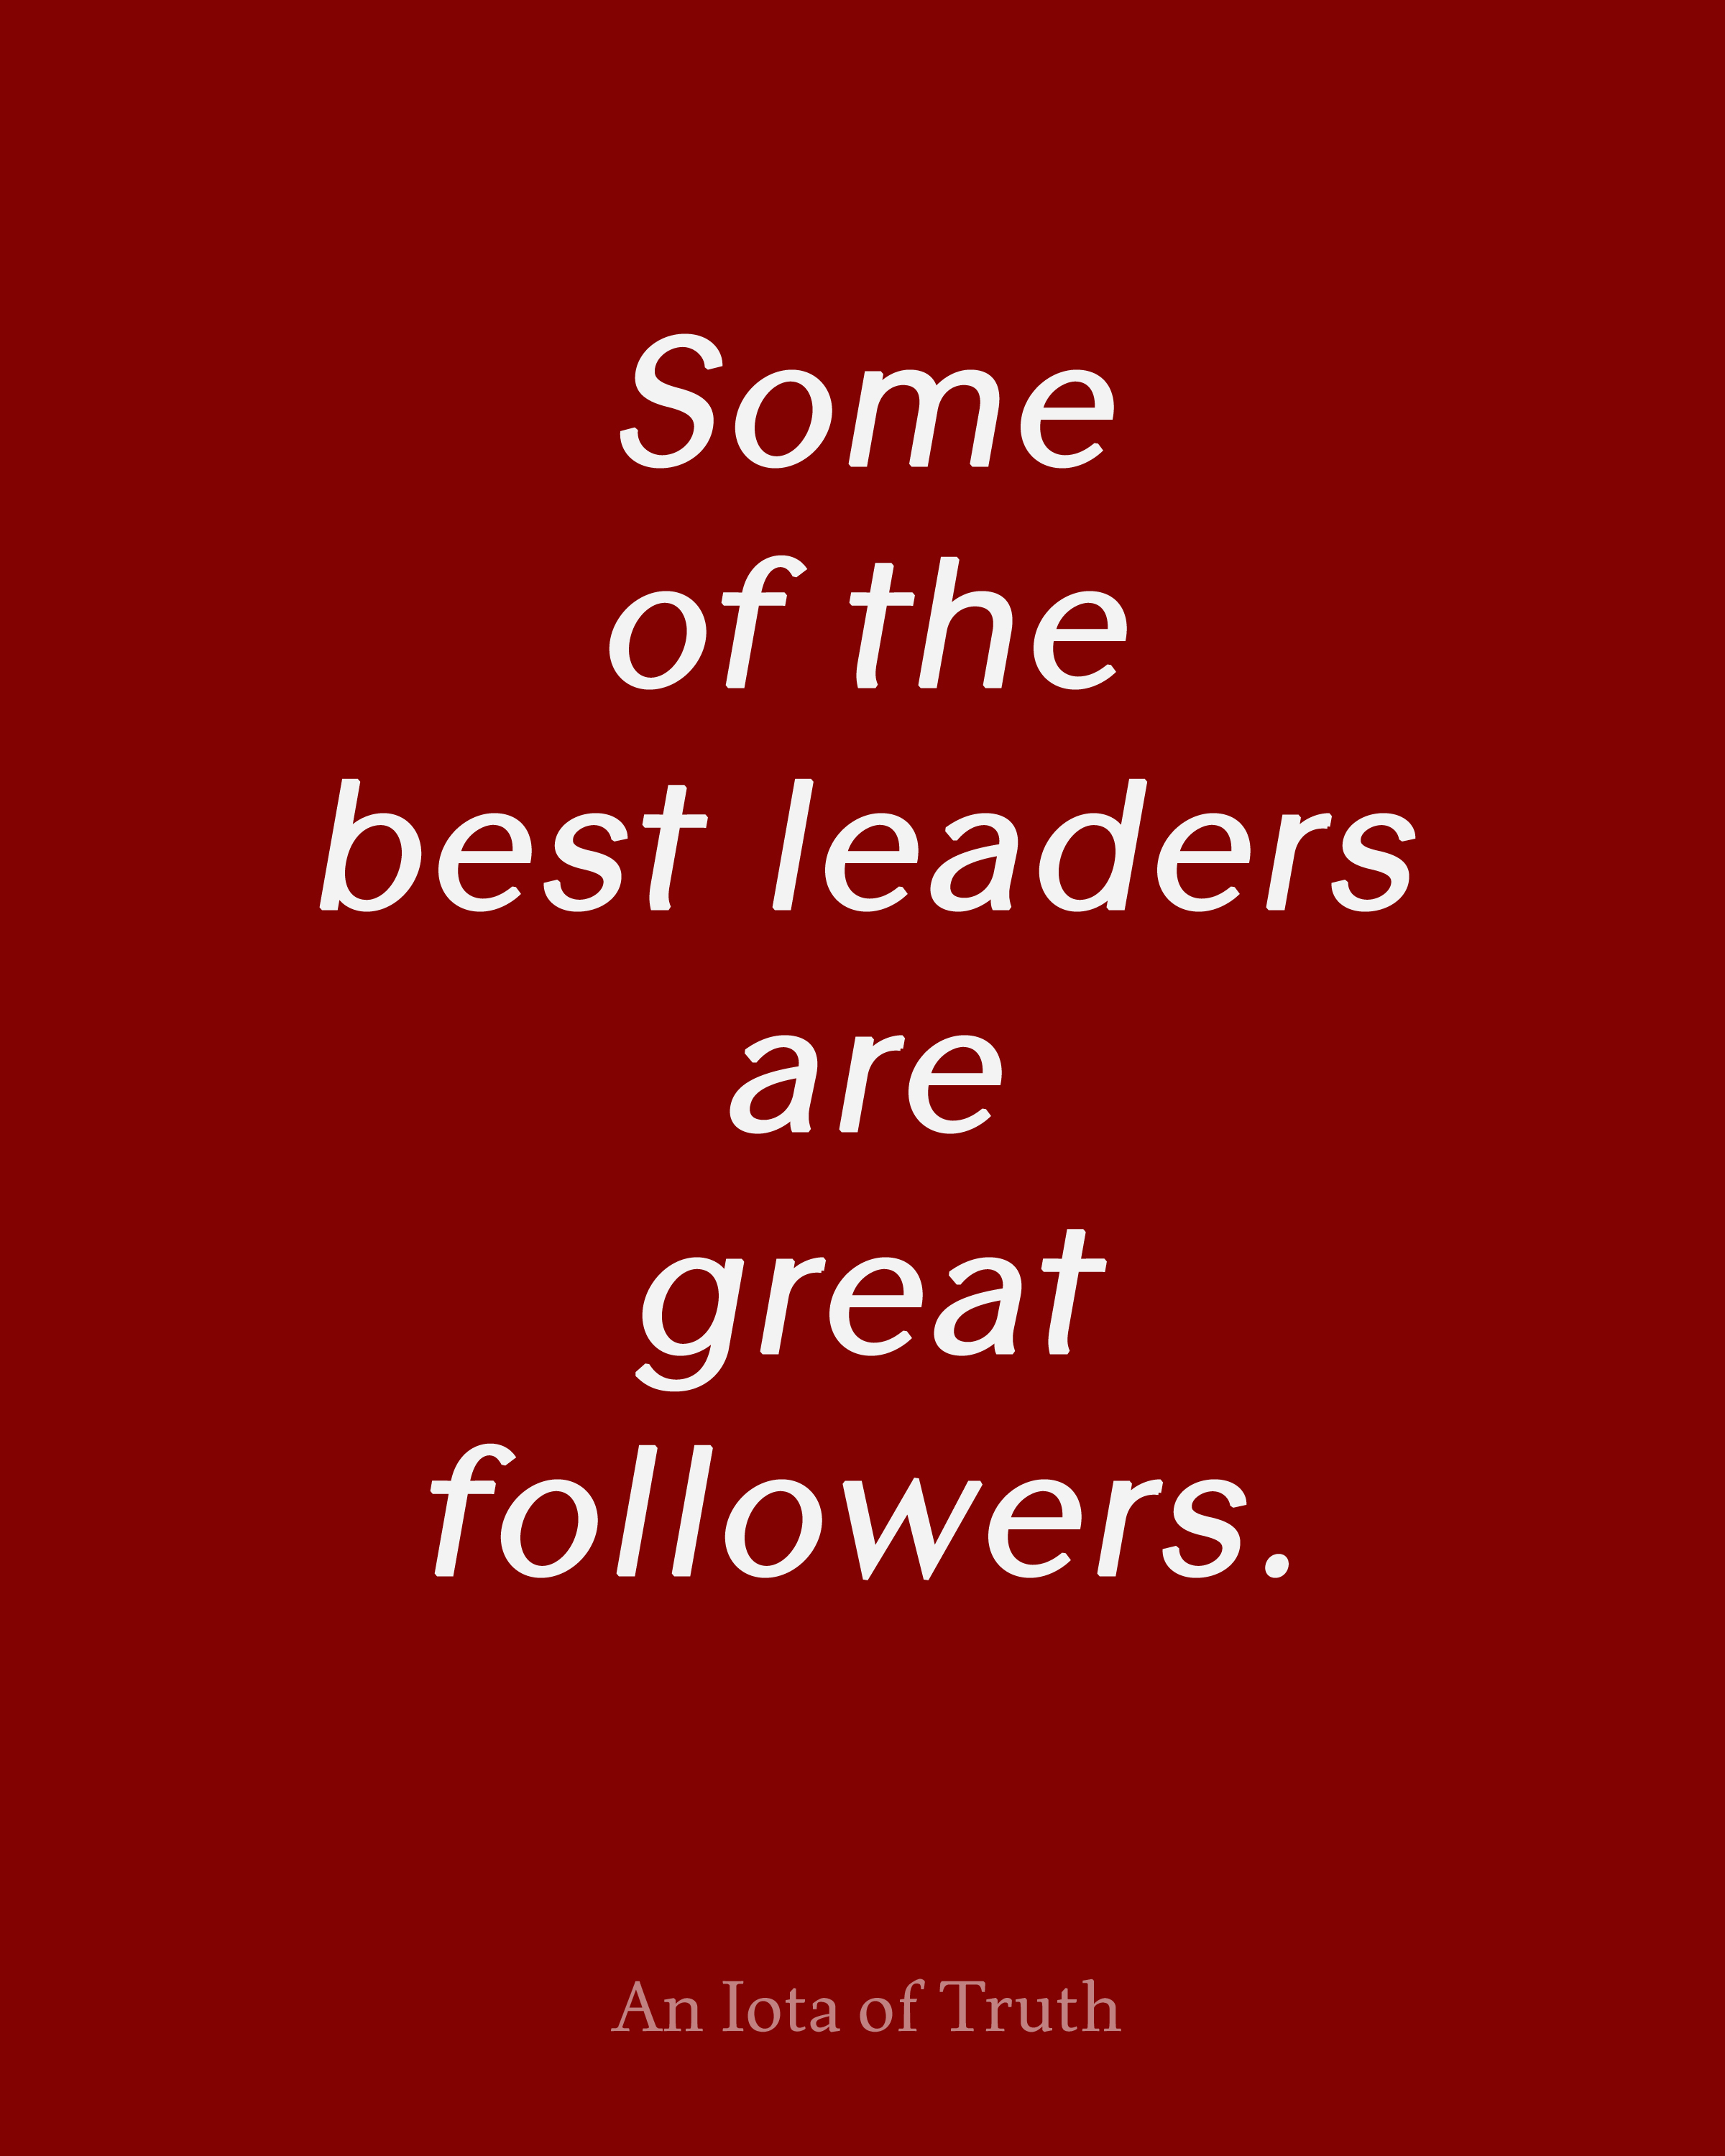 Quotes About Leaders And Followers. QuotesGram